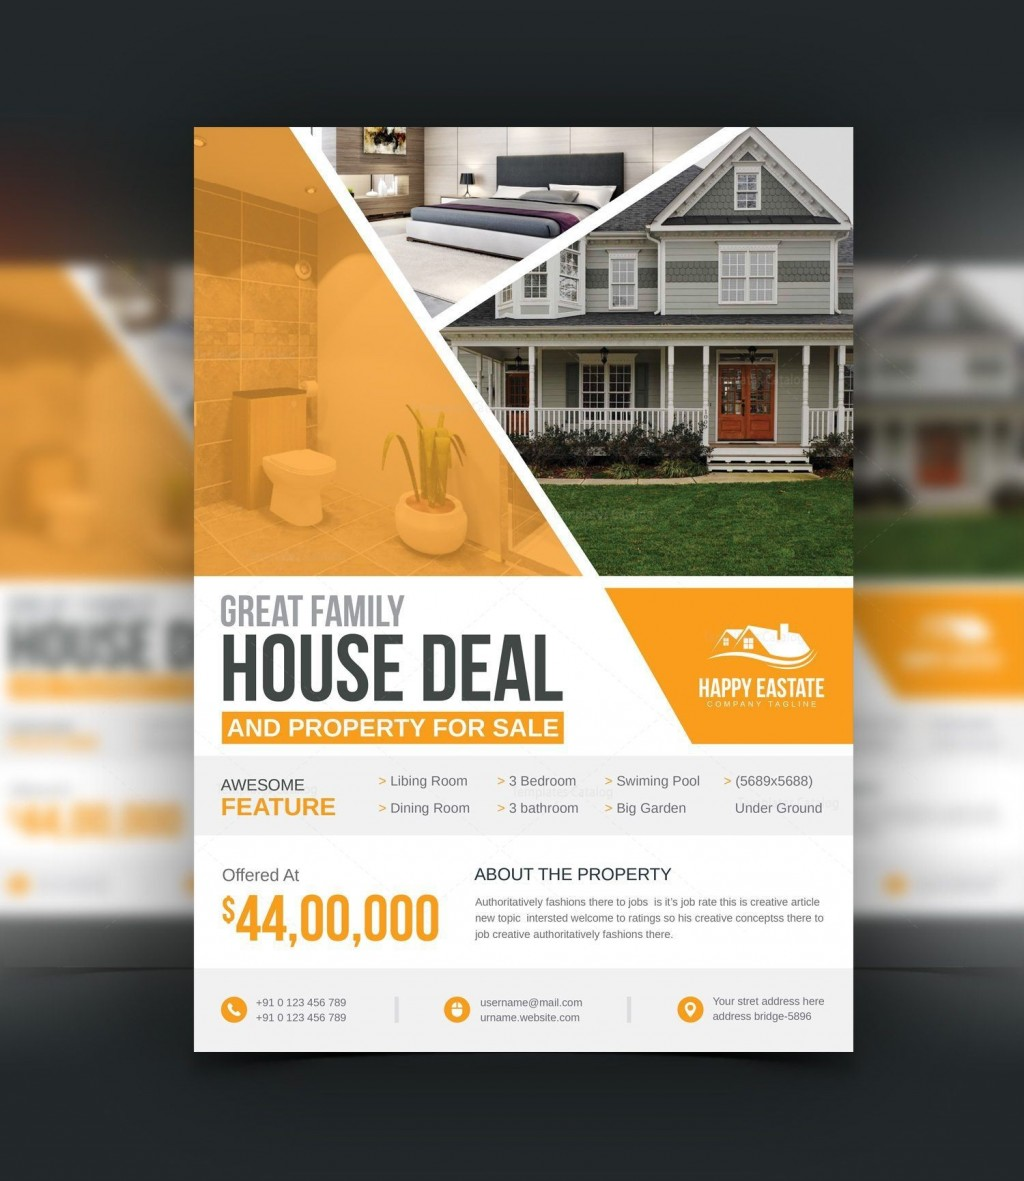 004 Awful Open House Flyer Template Highest Clarity  Templates Word Free Microsoft Real EstateLarge